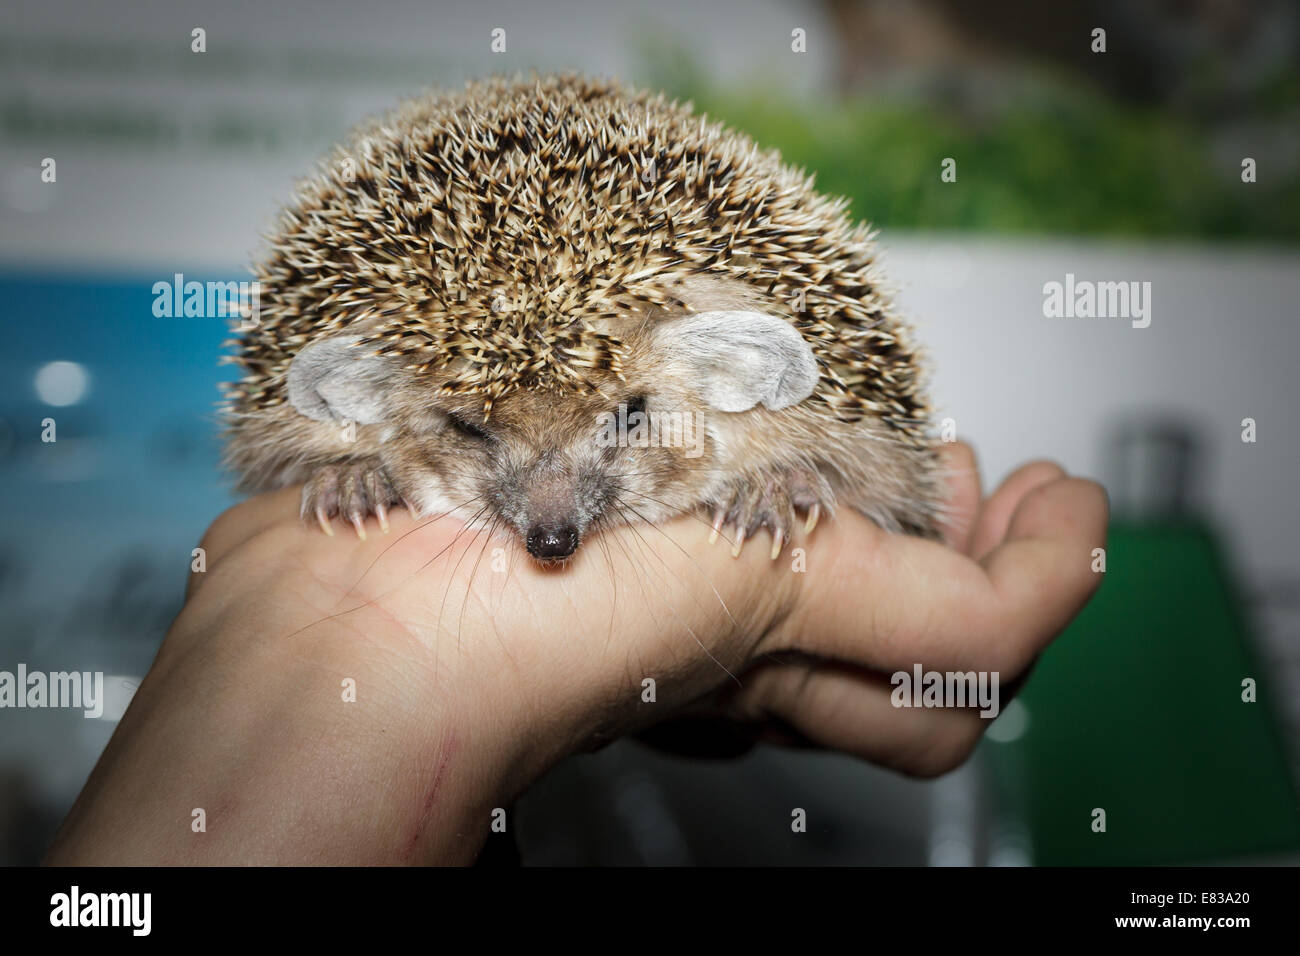 Hemiechinus auritus, Long-eared hedgehog like a pet. - Stock Image